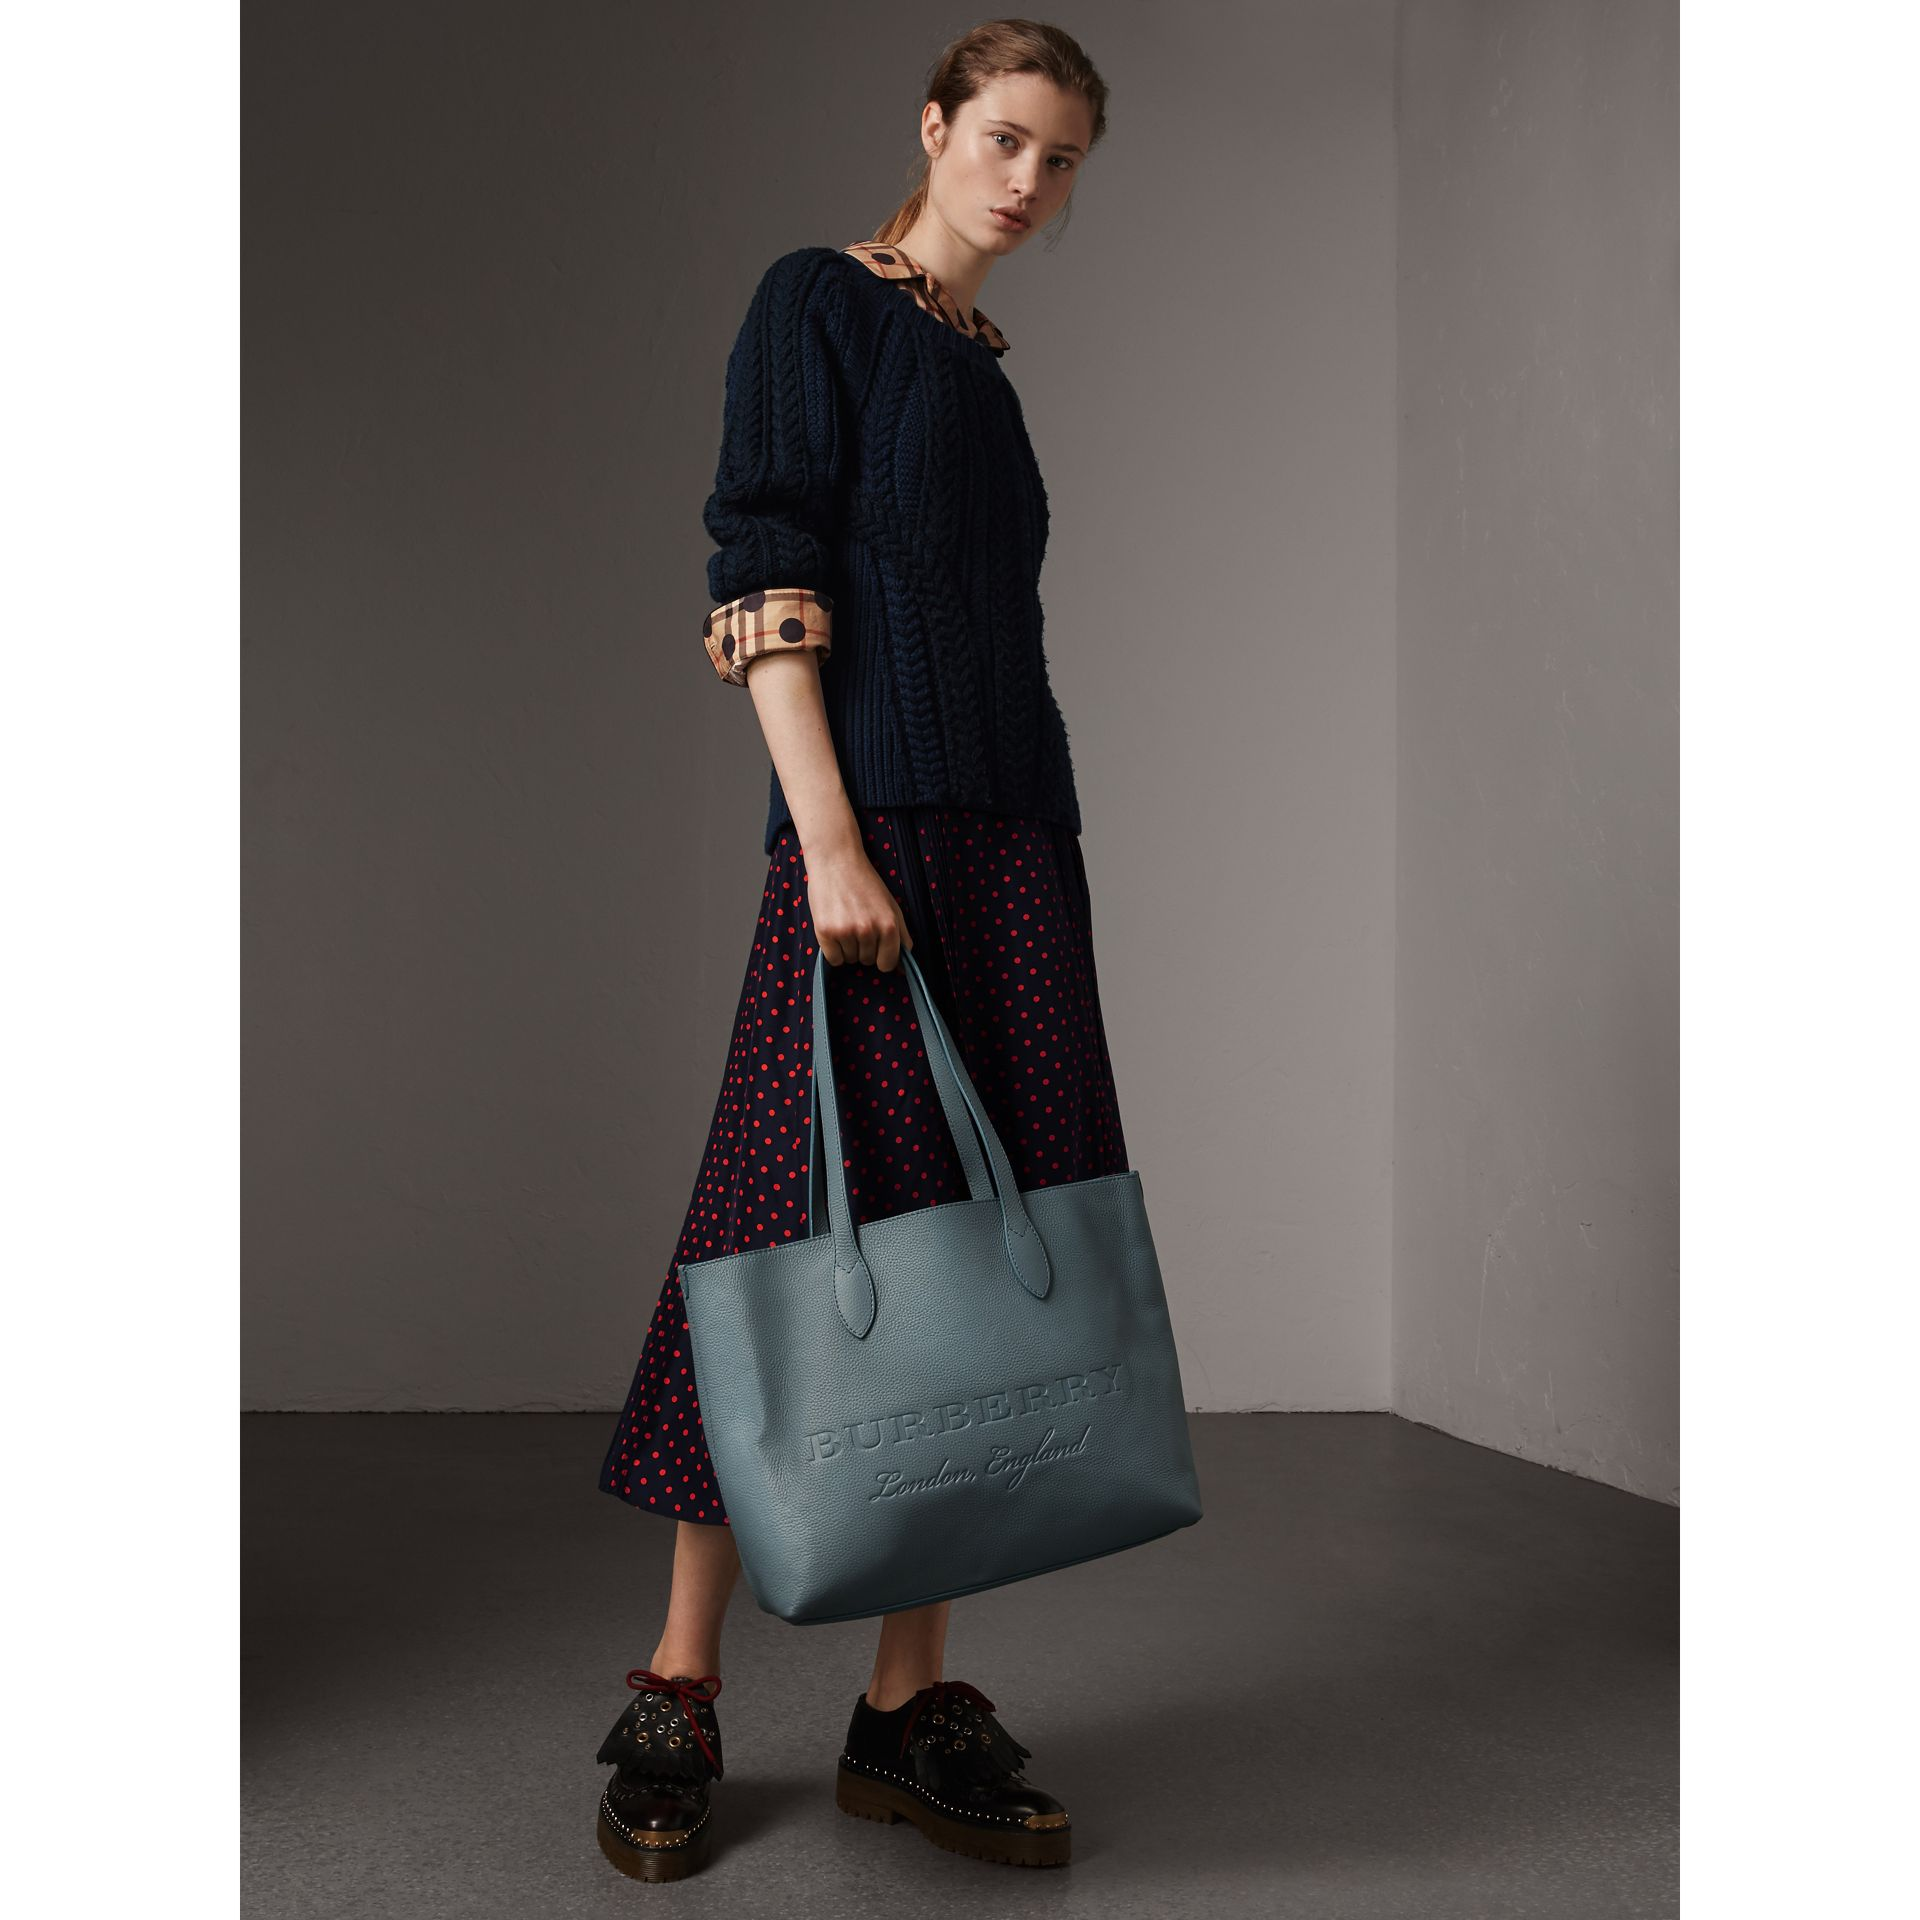 Medium Embossed Leather Tote in Dusty Teal Blue | Burberry - gallery image 3